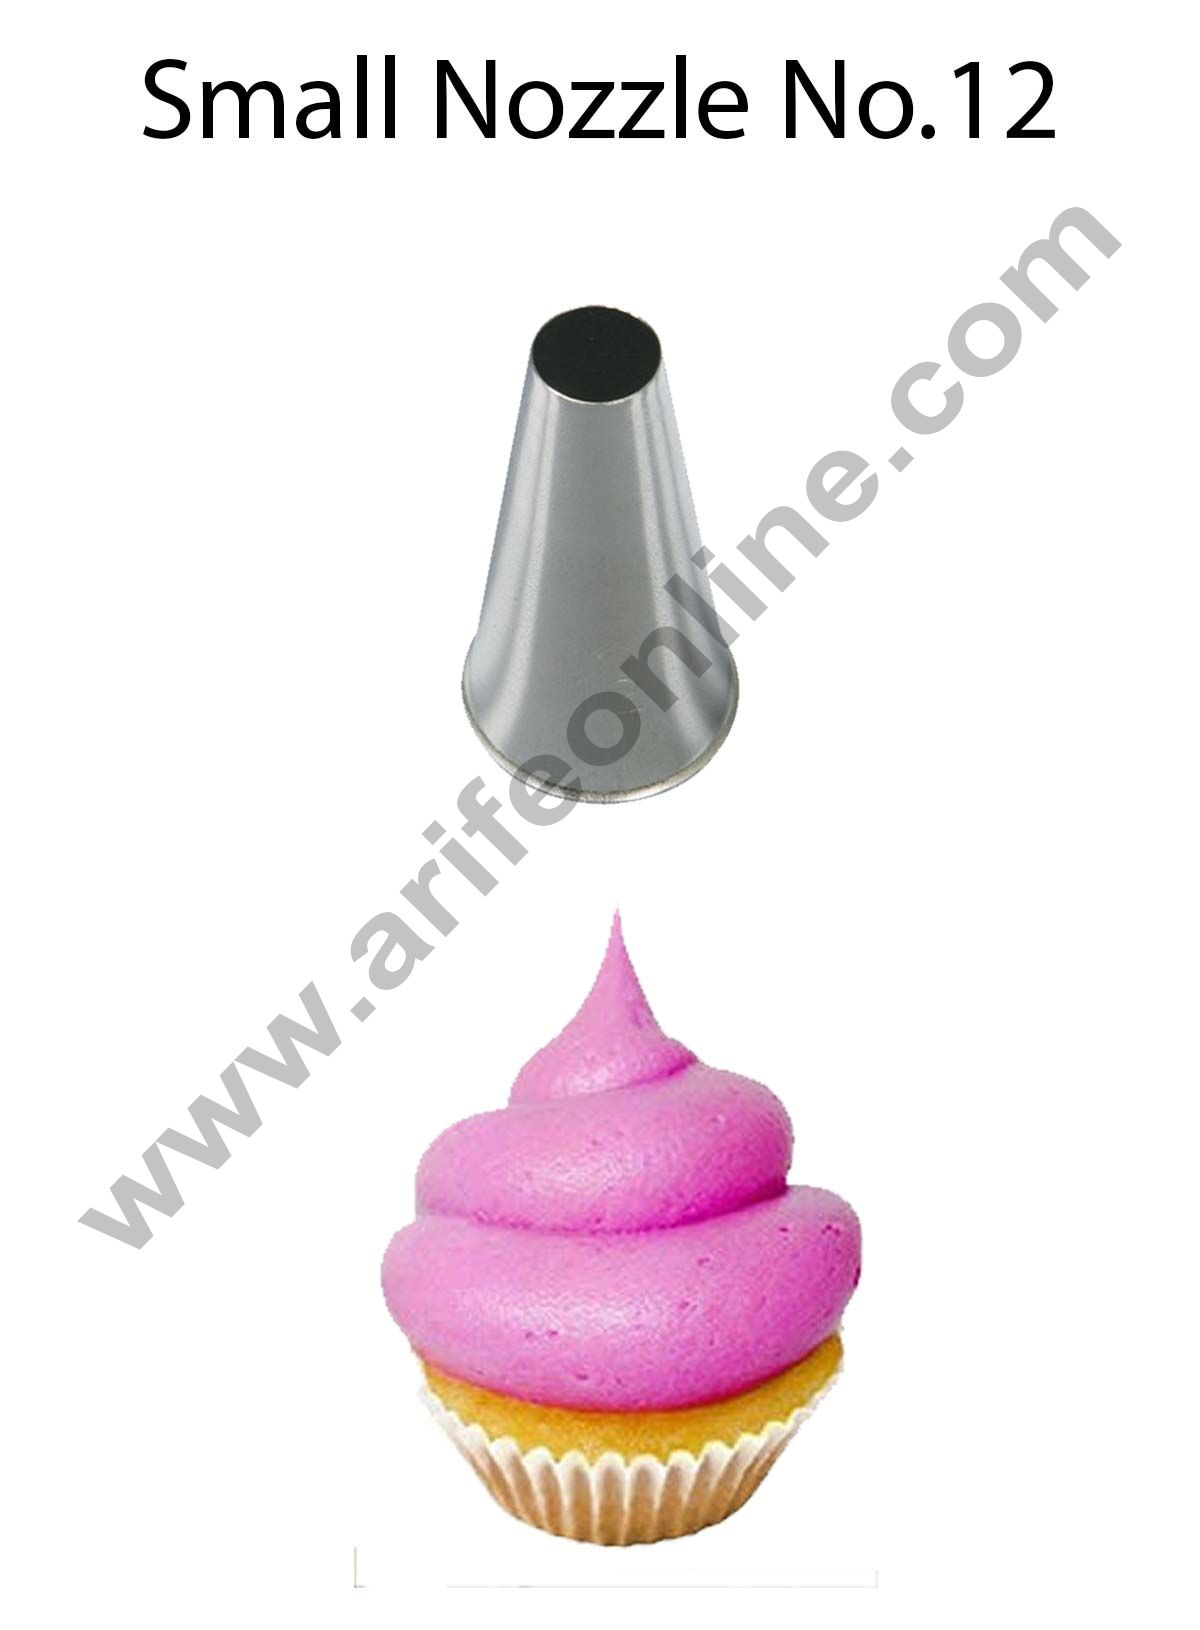 Cake Decor Small Nozzle - No. 12 Round Piping Nozzle